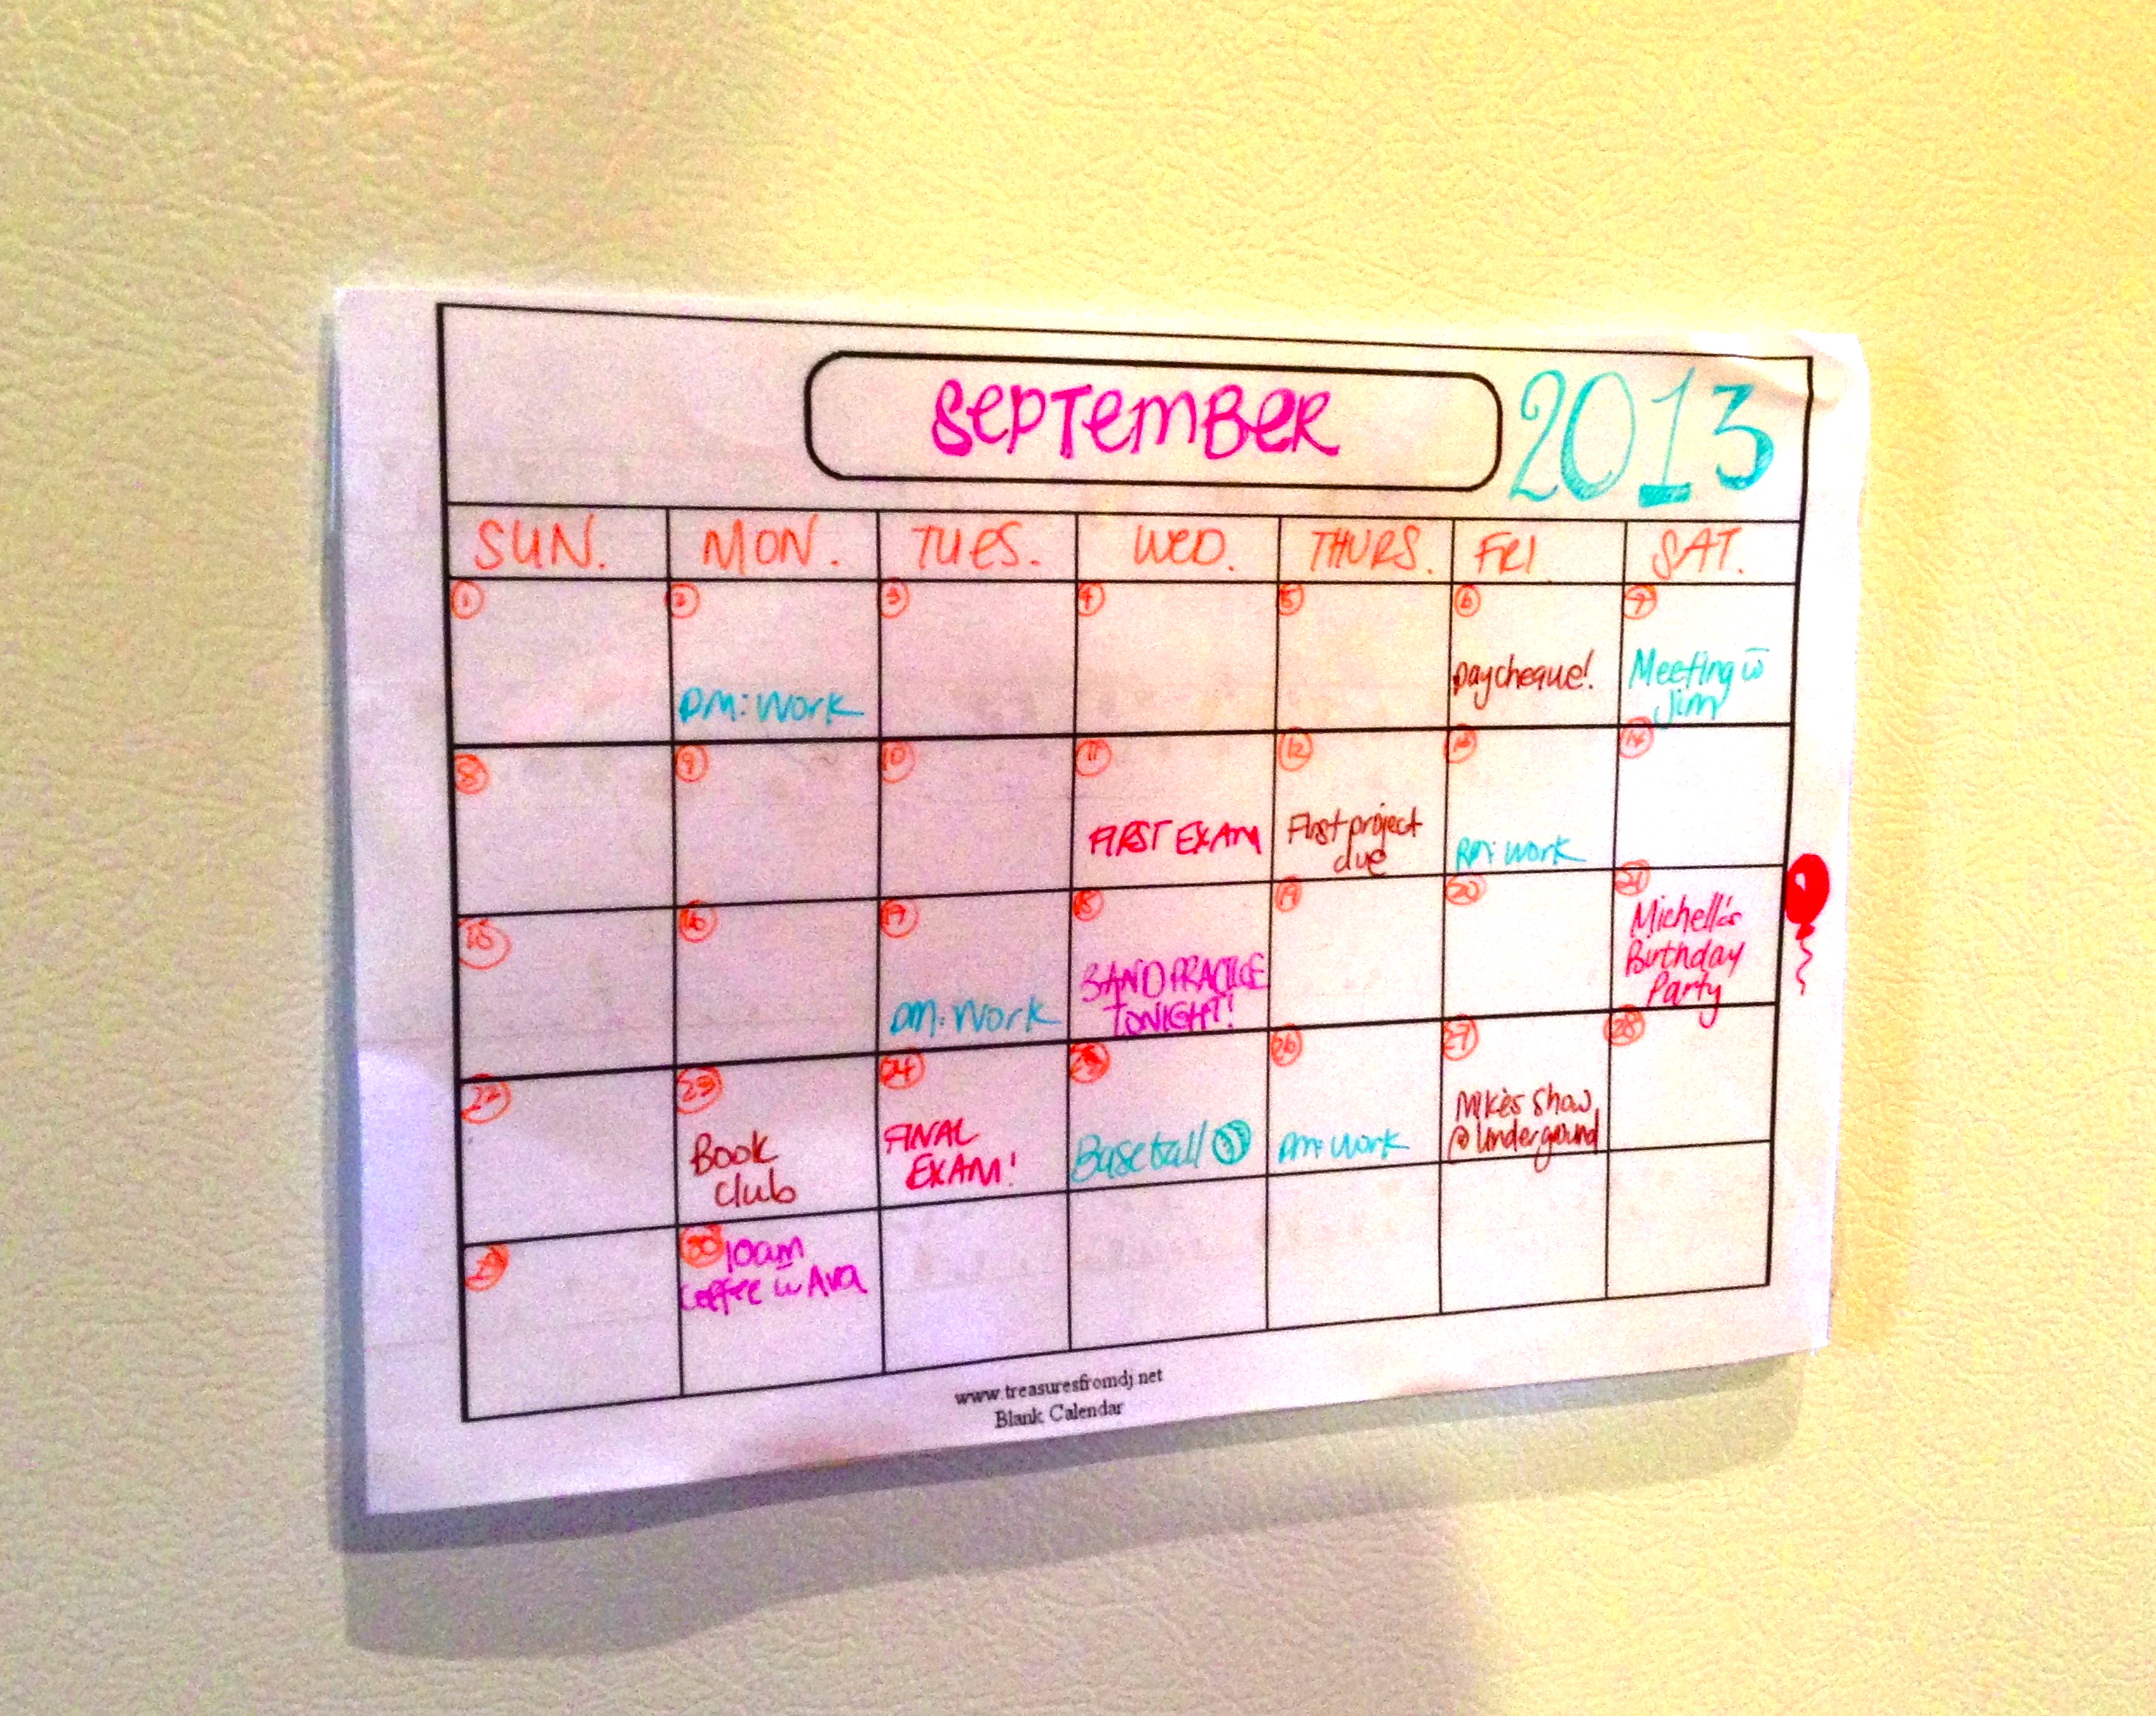 How To Diy Calendar : Diy dry erase calendar bandit tape gun